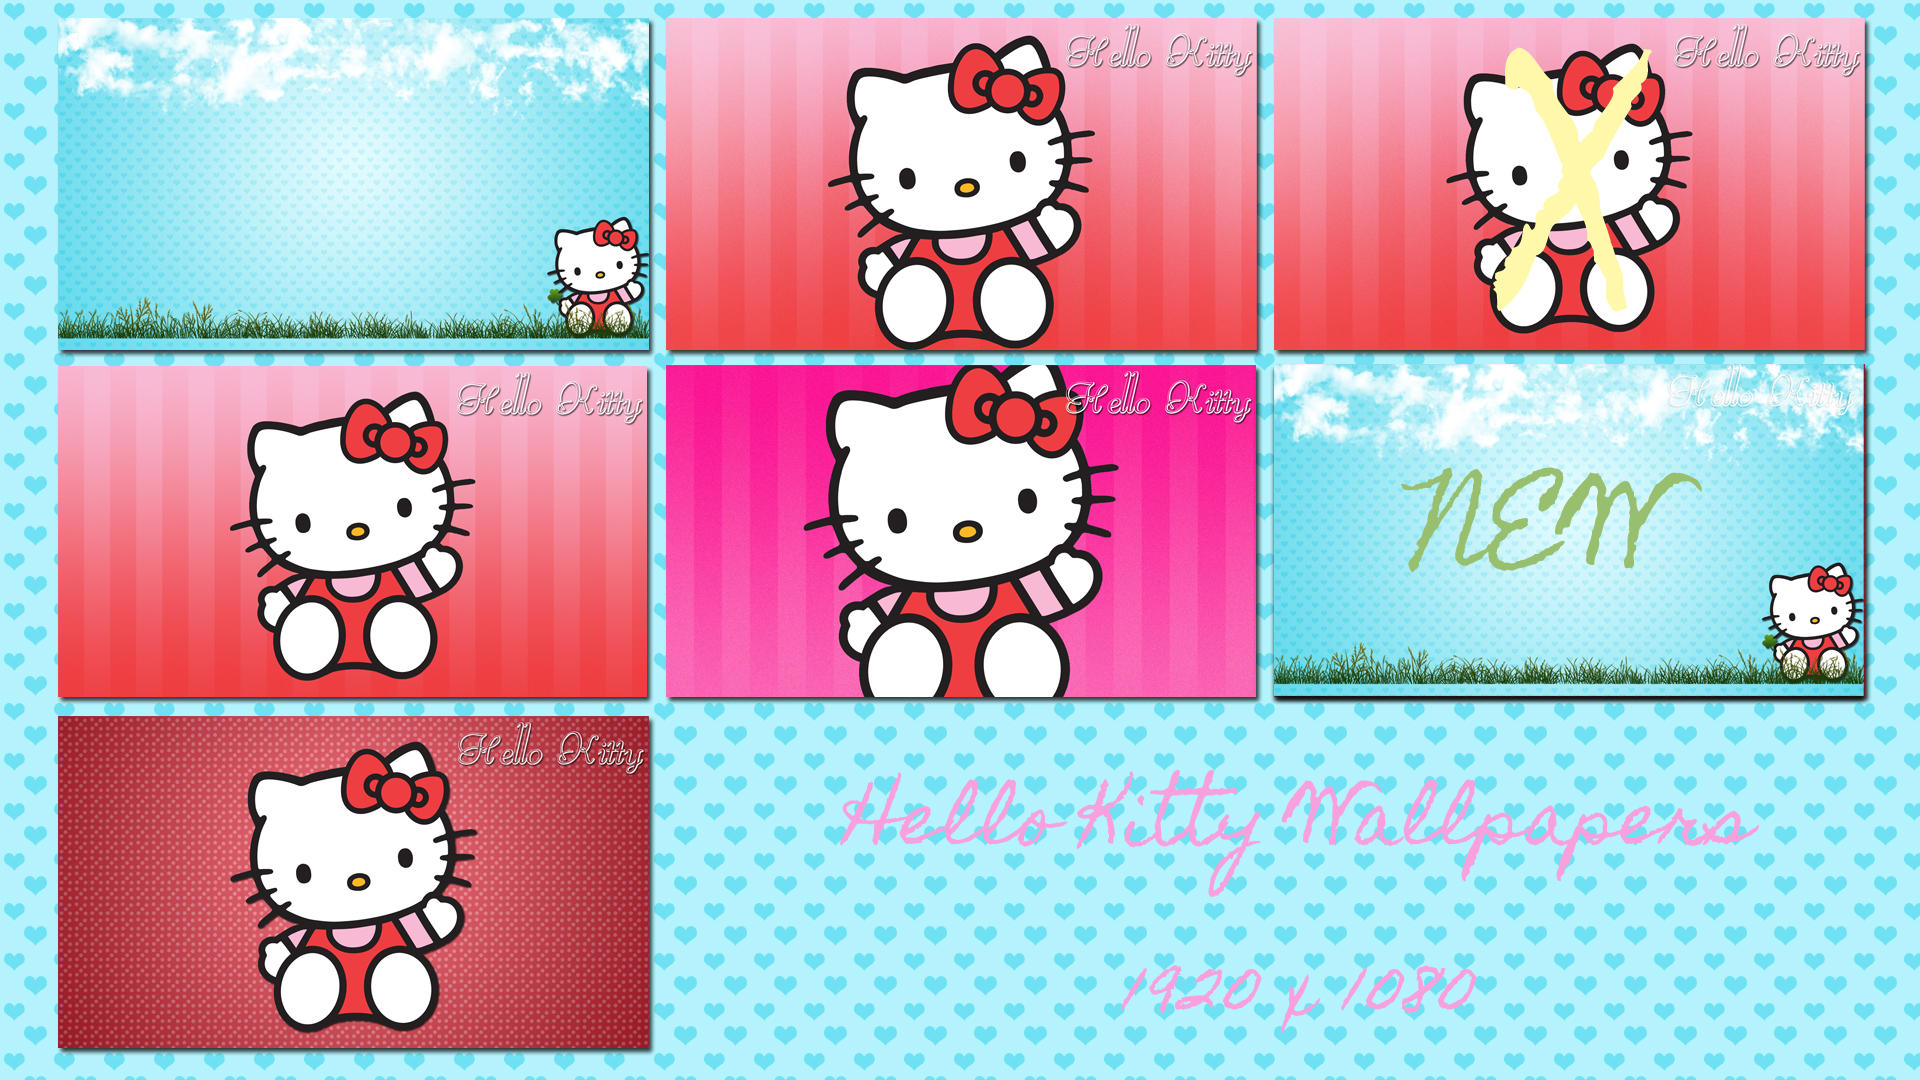 Wonderful Wallpaper Hello Kitty Cupcake - cute_hello_kitty_desktop_6_pack____1920_x_1080_by_cupcakekitten20-d4tylq2  Picture_51162.jpg